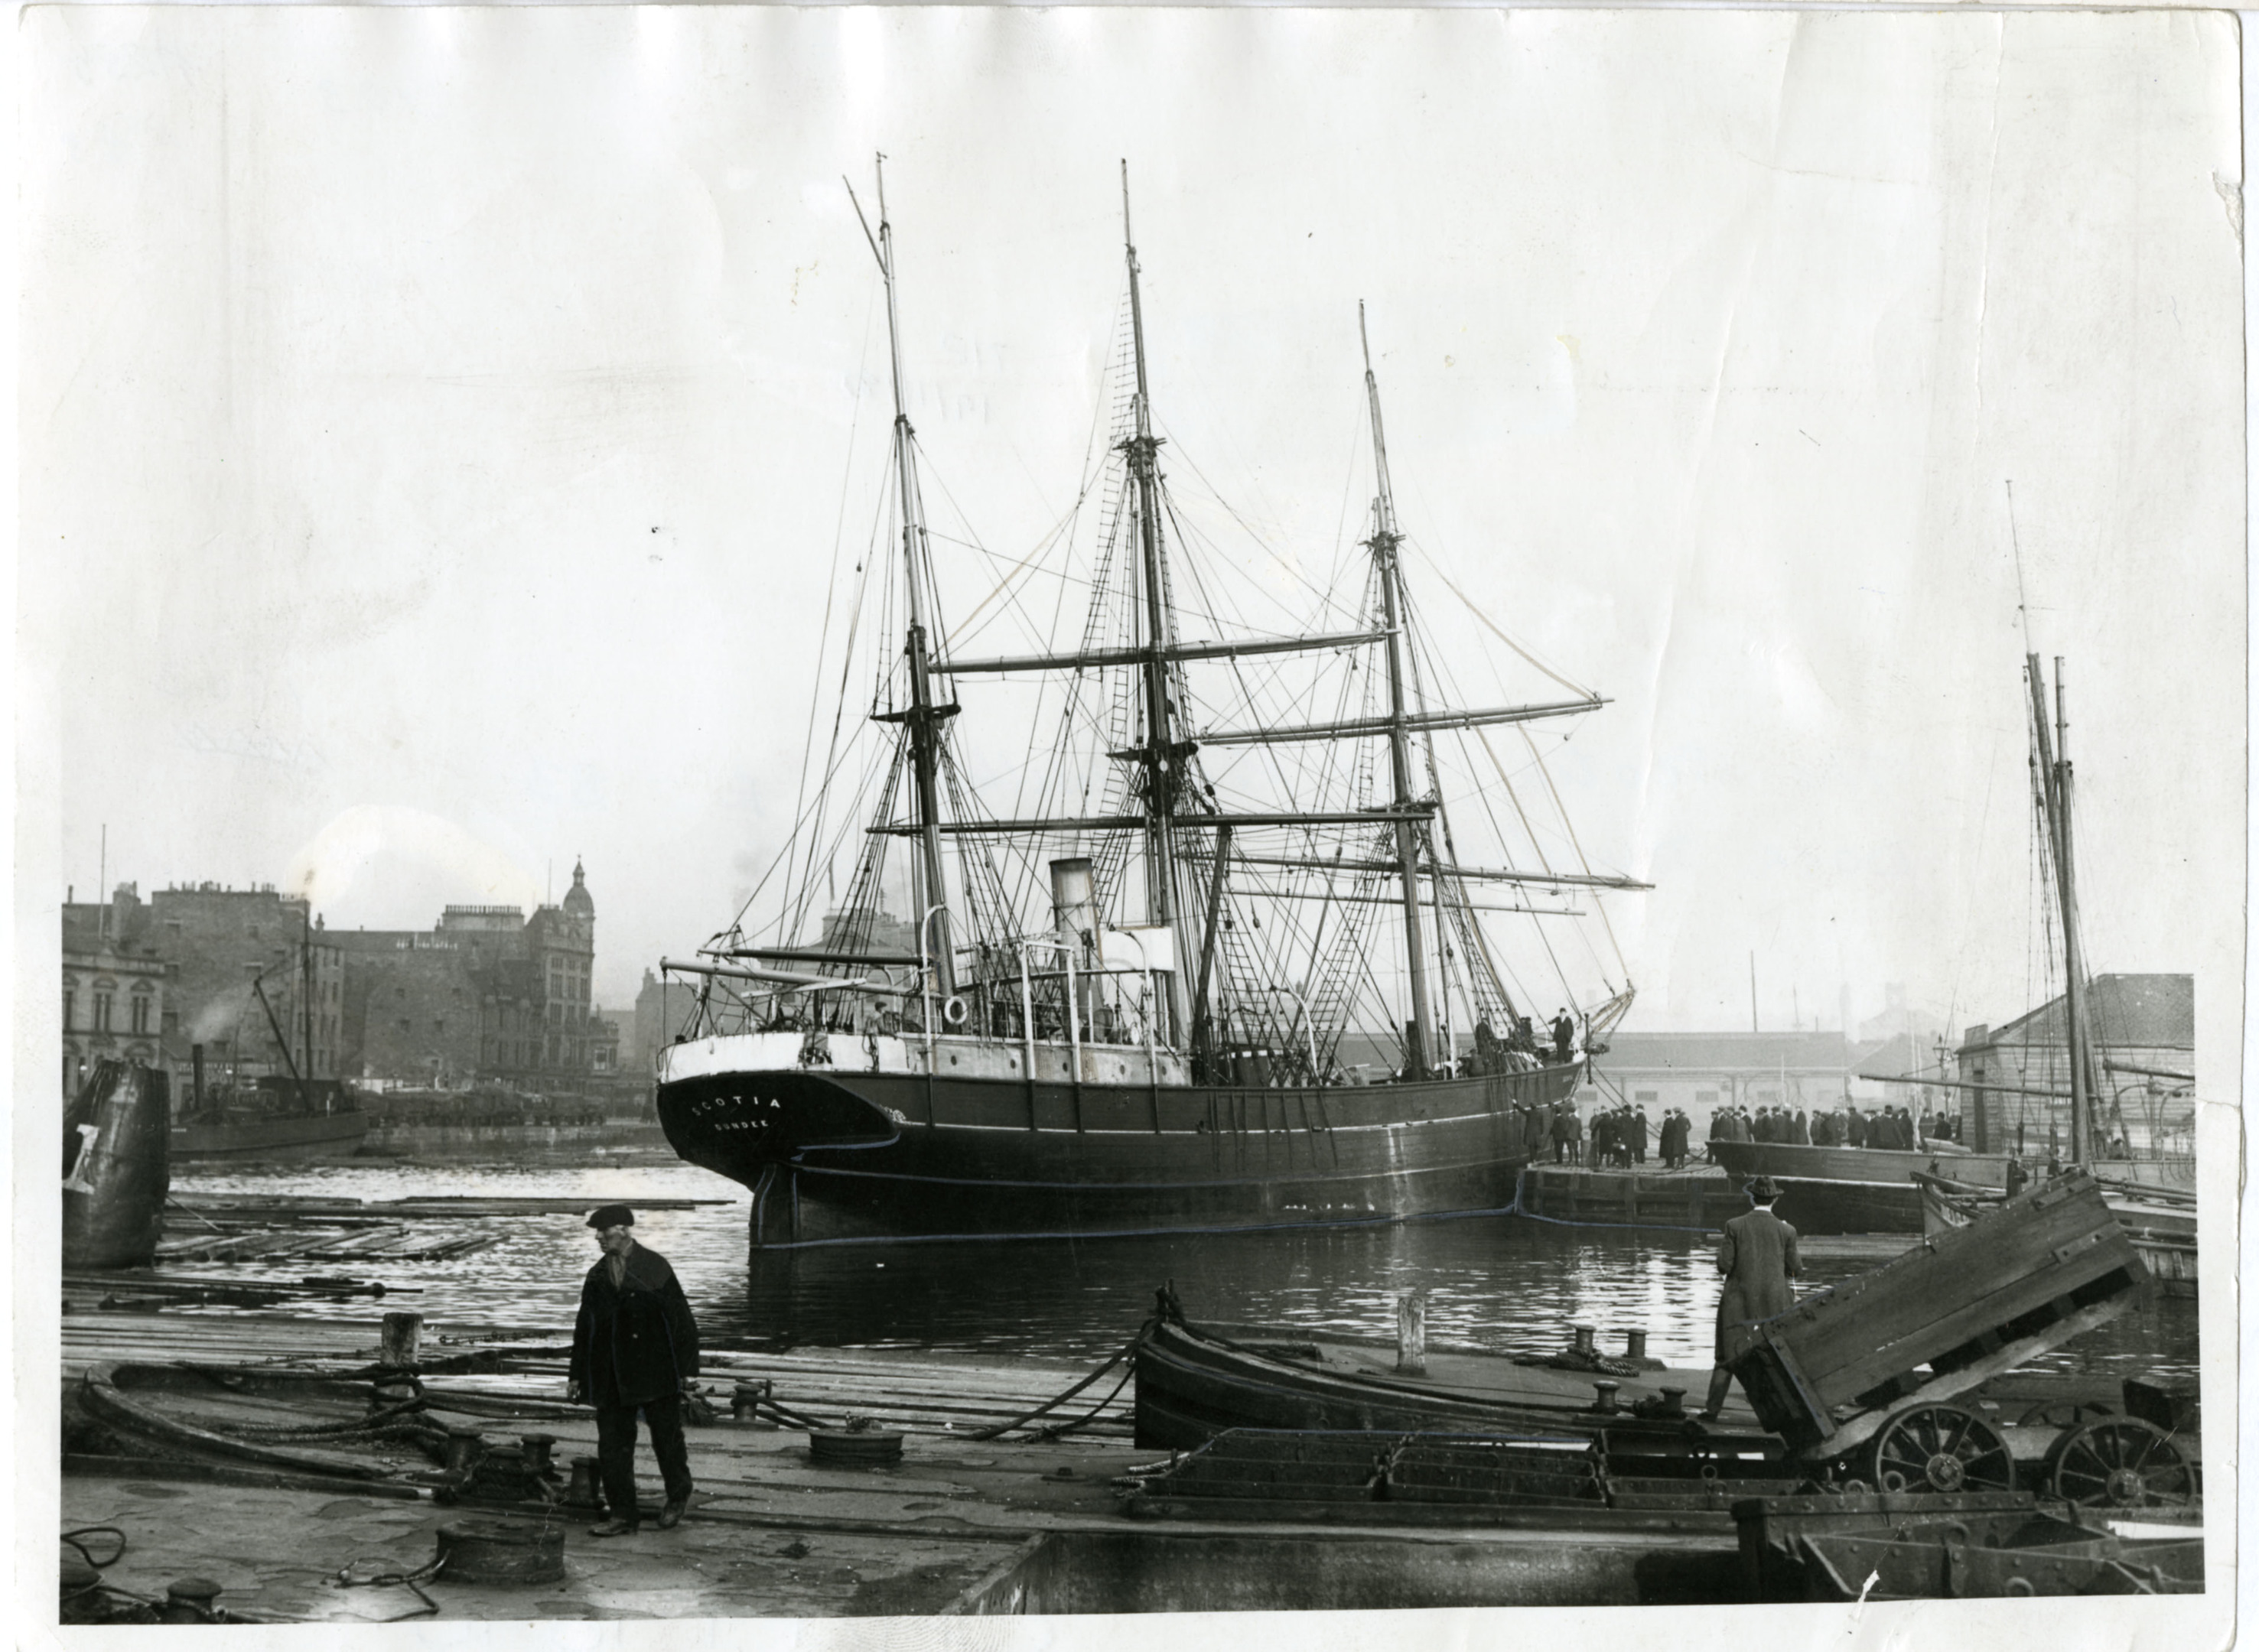 The whaling ship Scotia at King William Dock, Dundee, at the turn of the 19th Century.